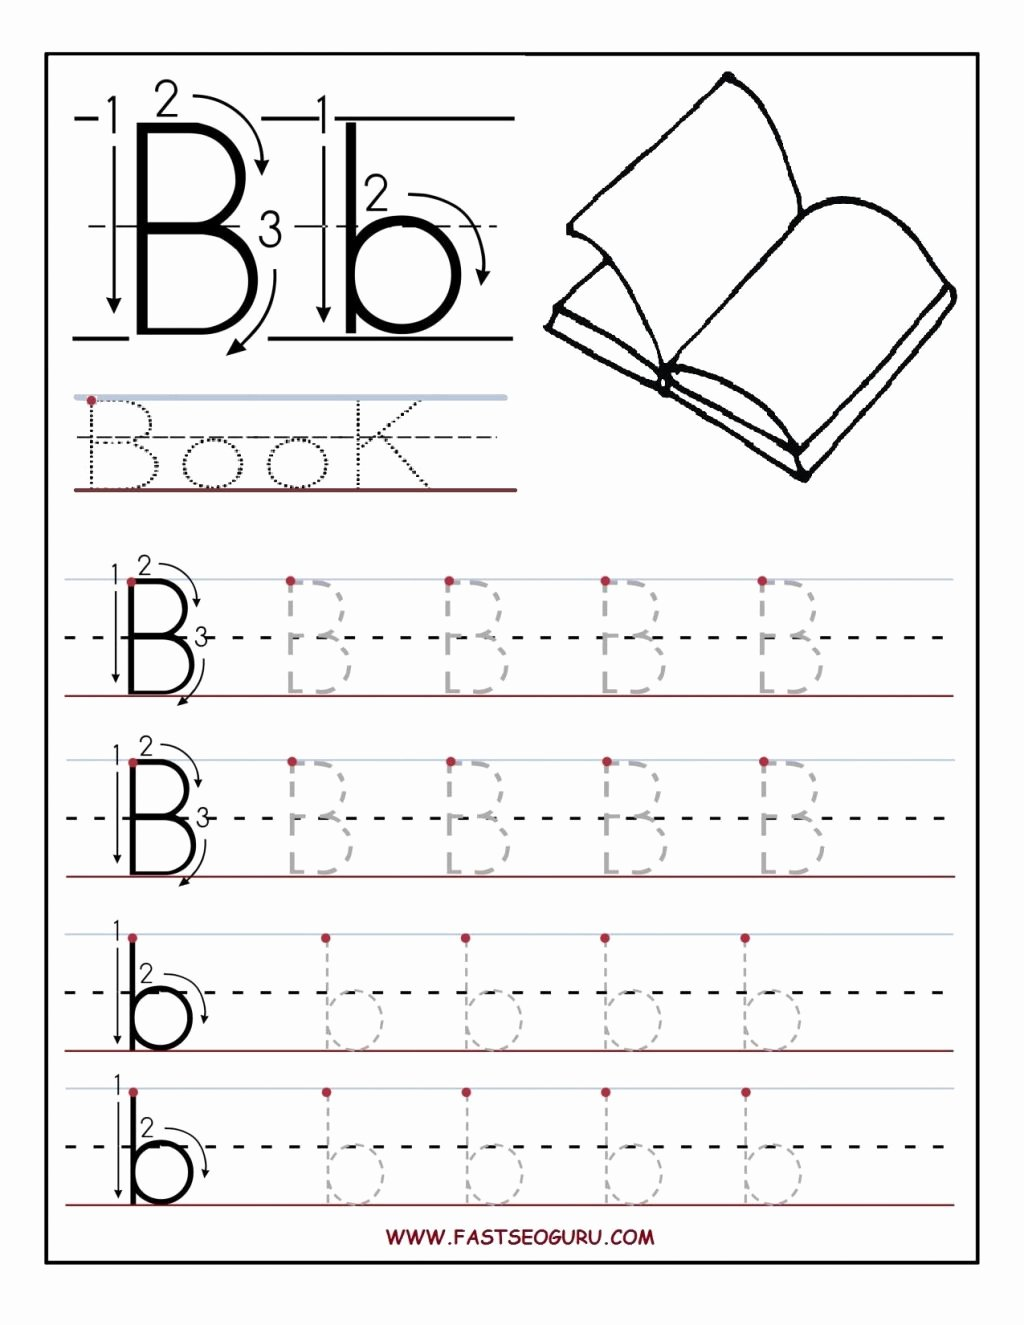 Letter Tracing Worksheets for Preschoolers Free New Worksheet Free Pre K Printables Worksheet Printable Letter